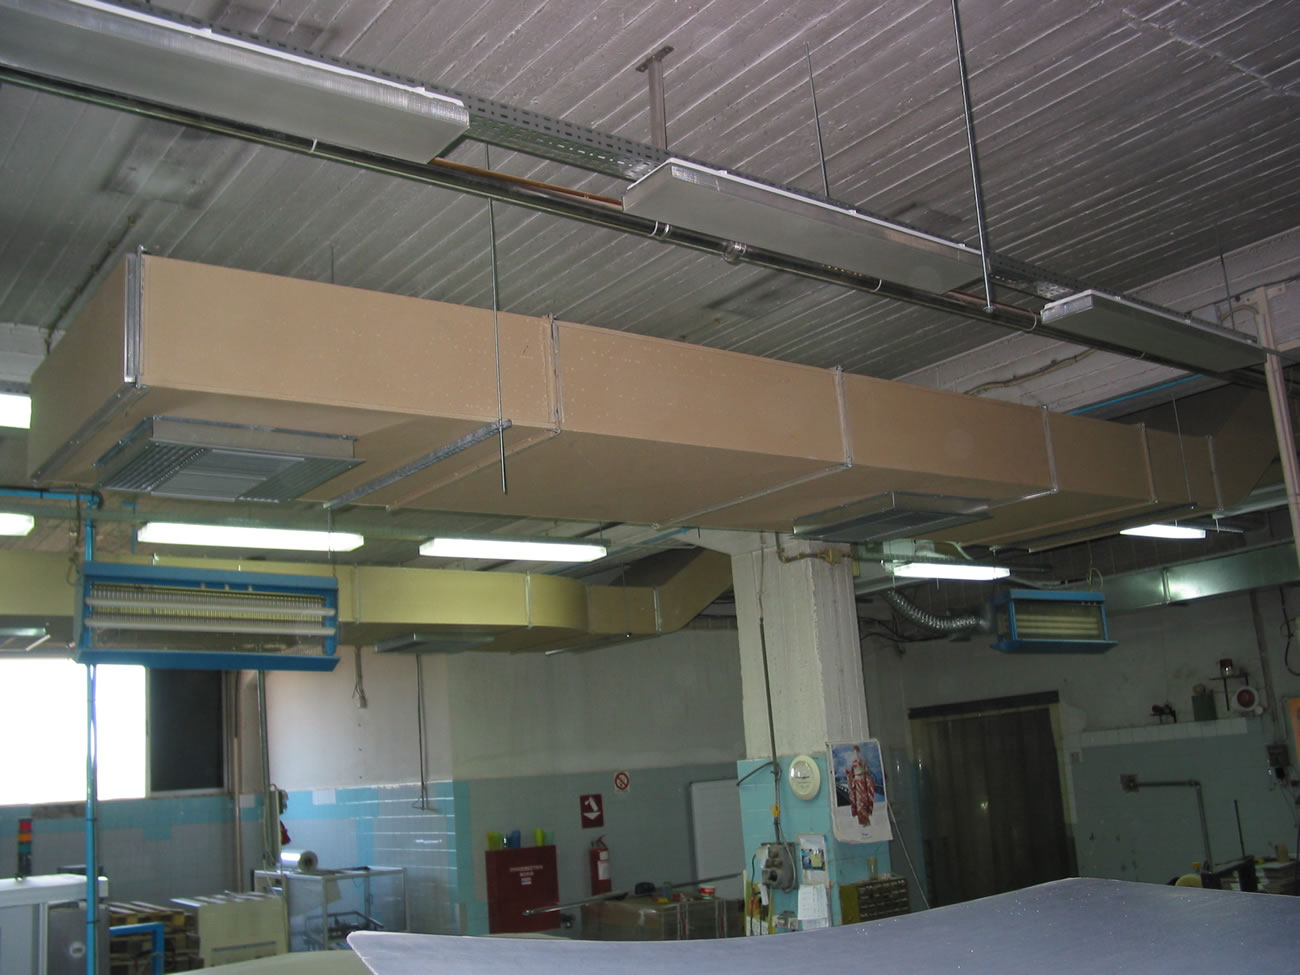 Airconditioning system in a chocolate production factory